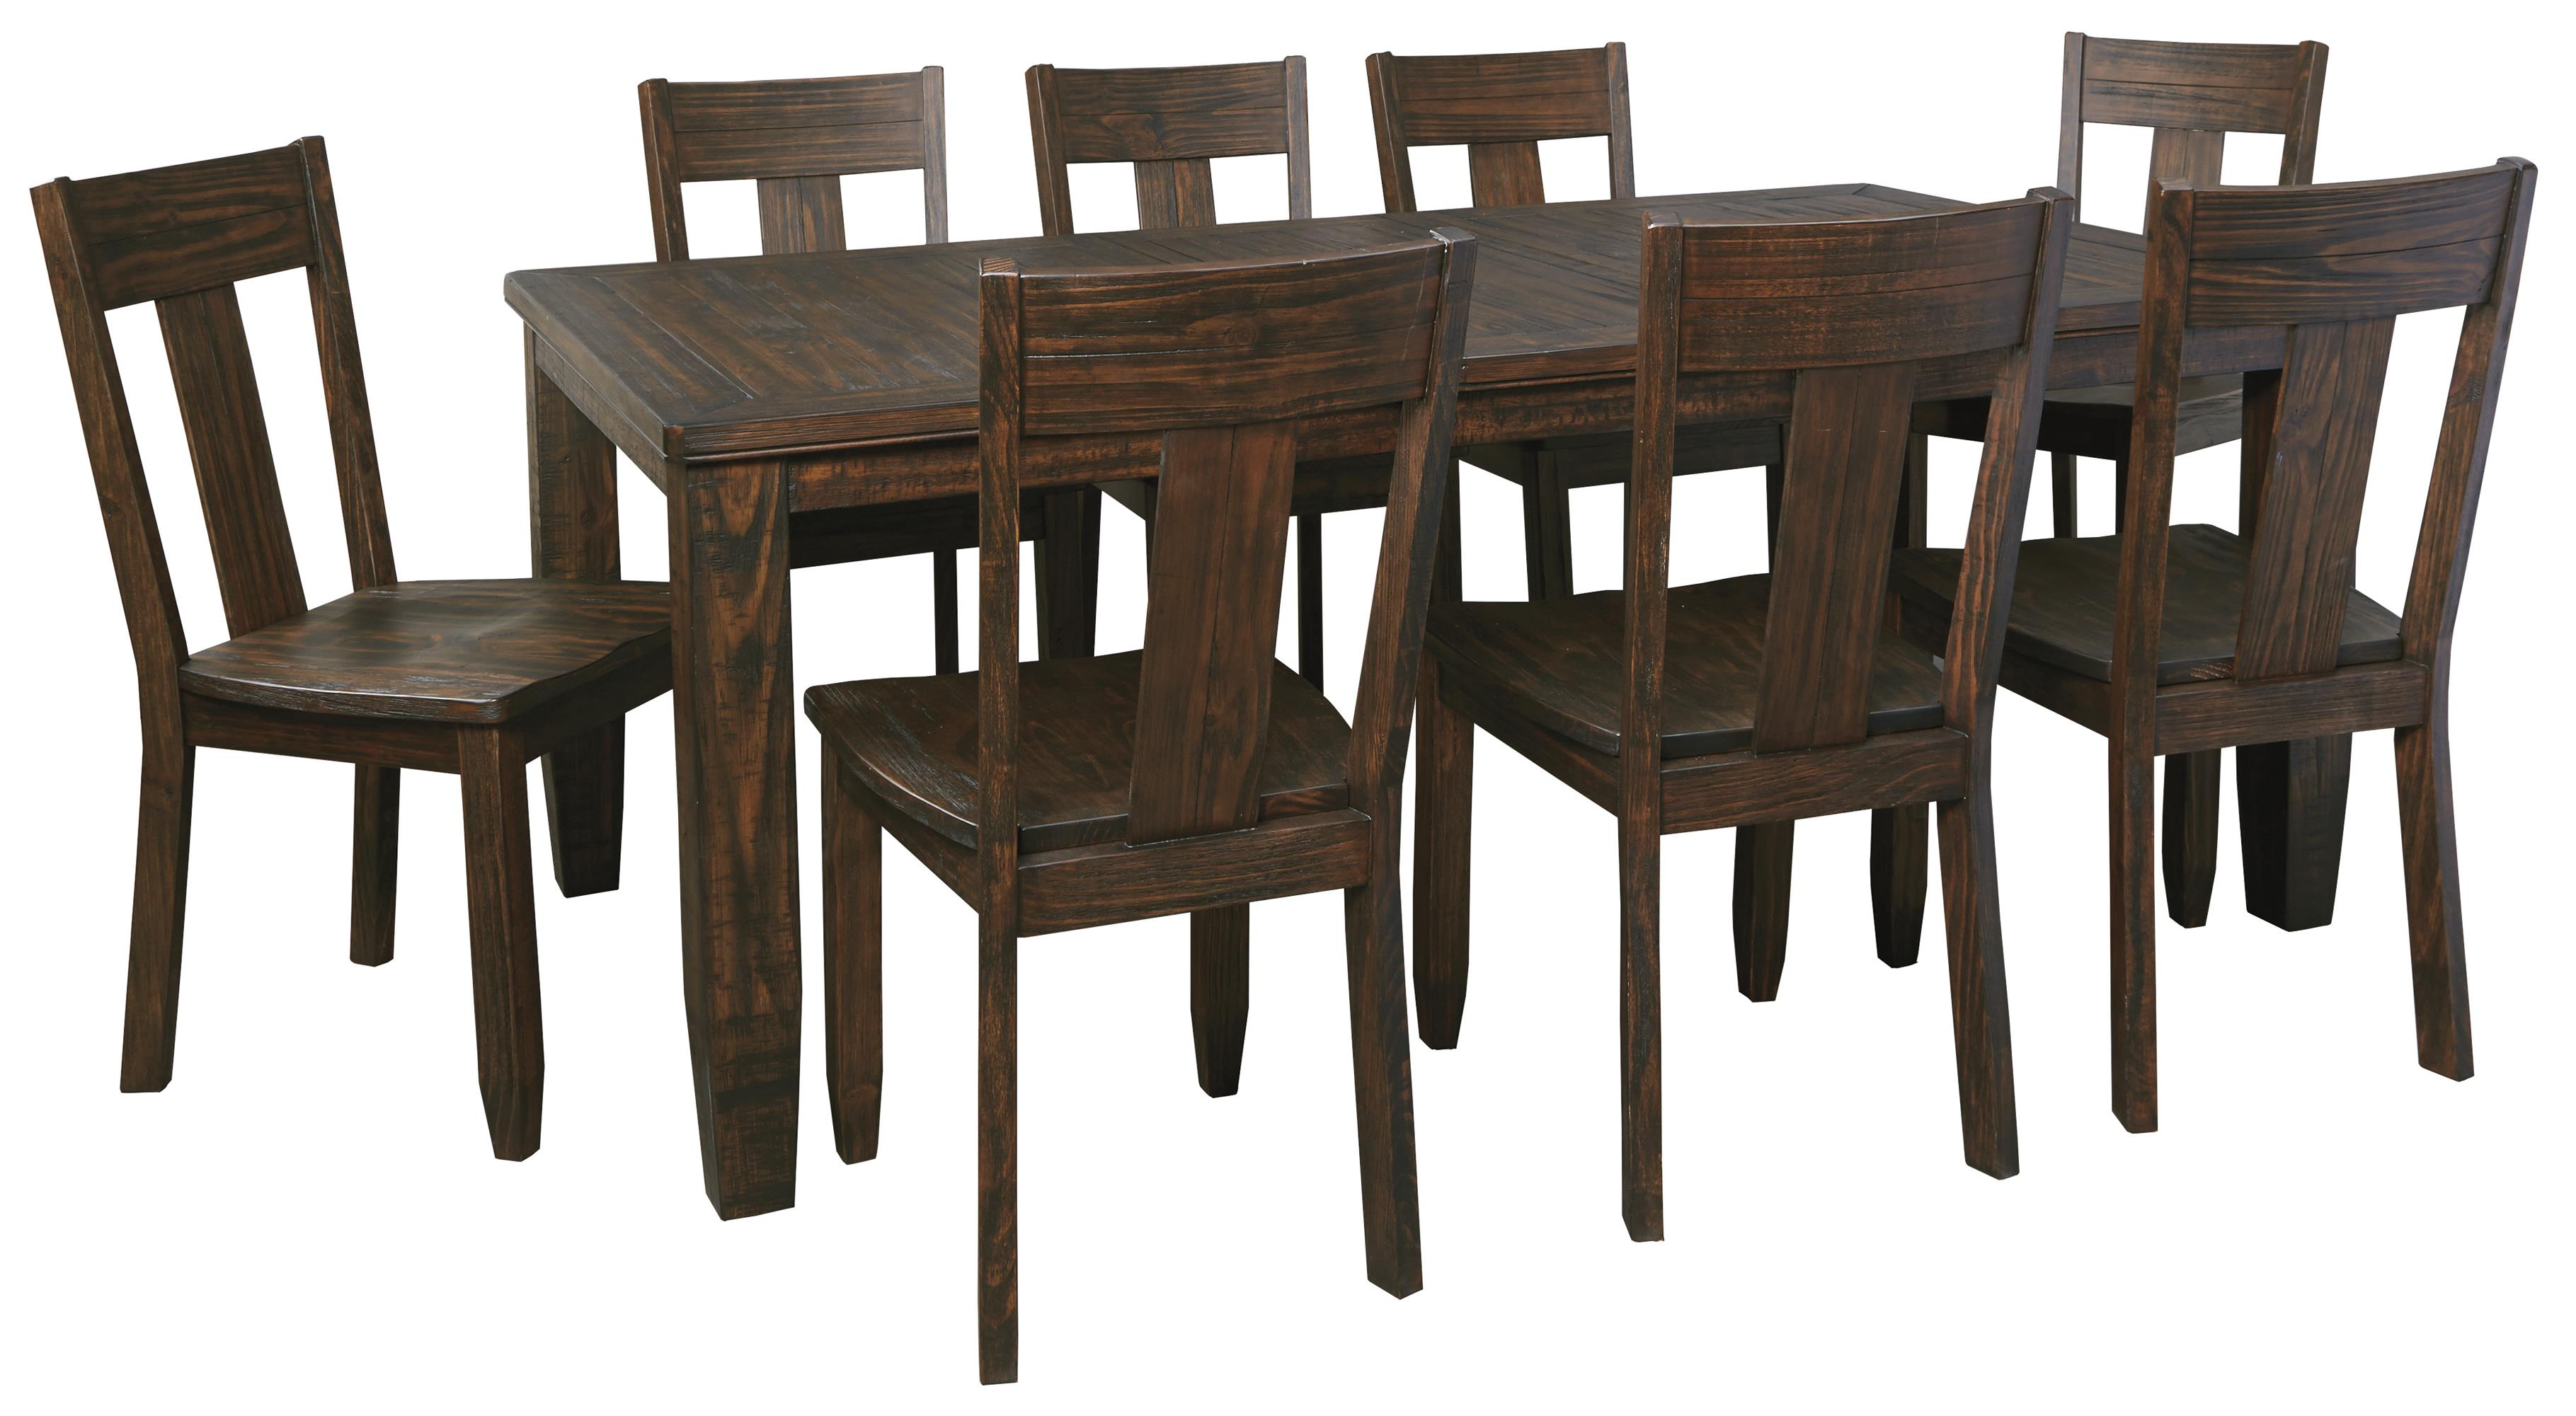 9piece rectangular dining table set with wood seat chairs